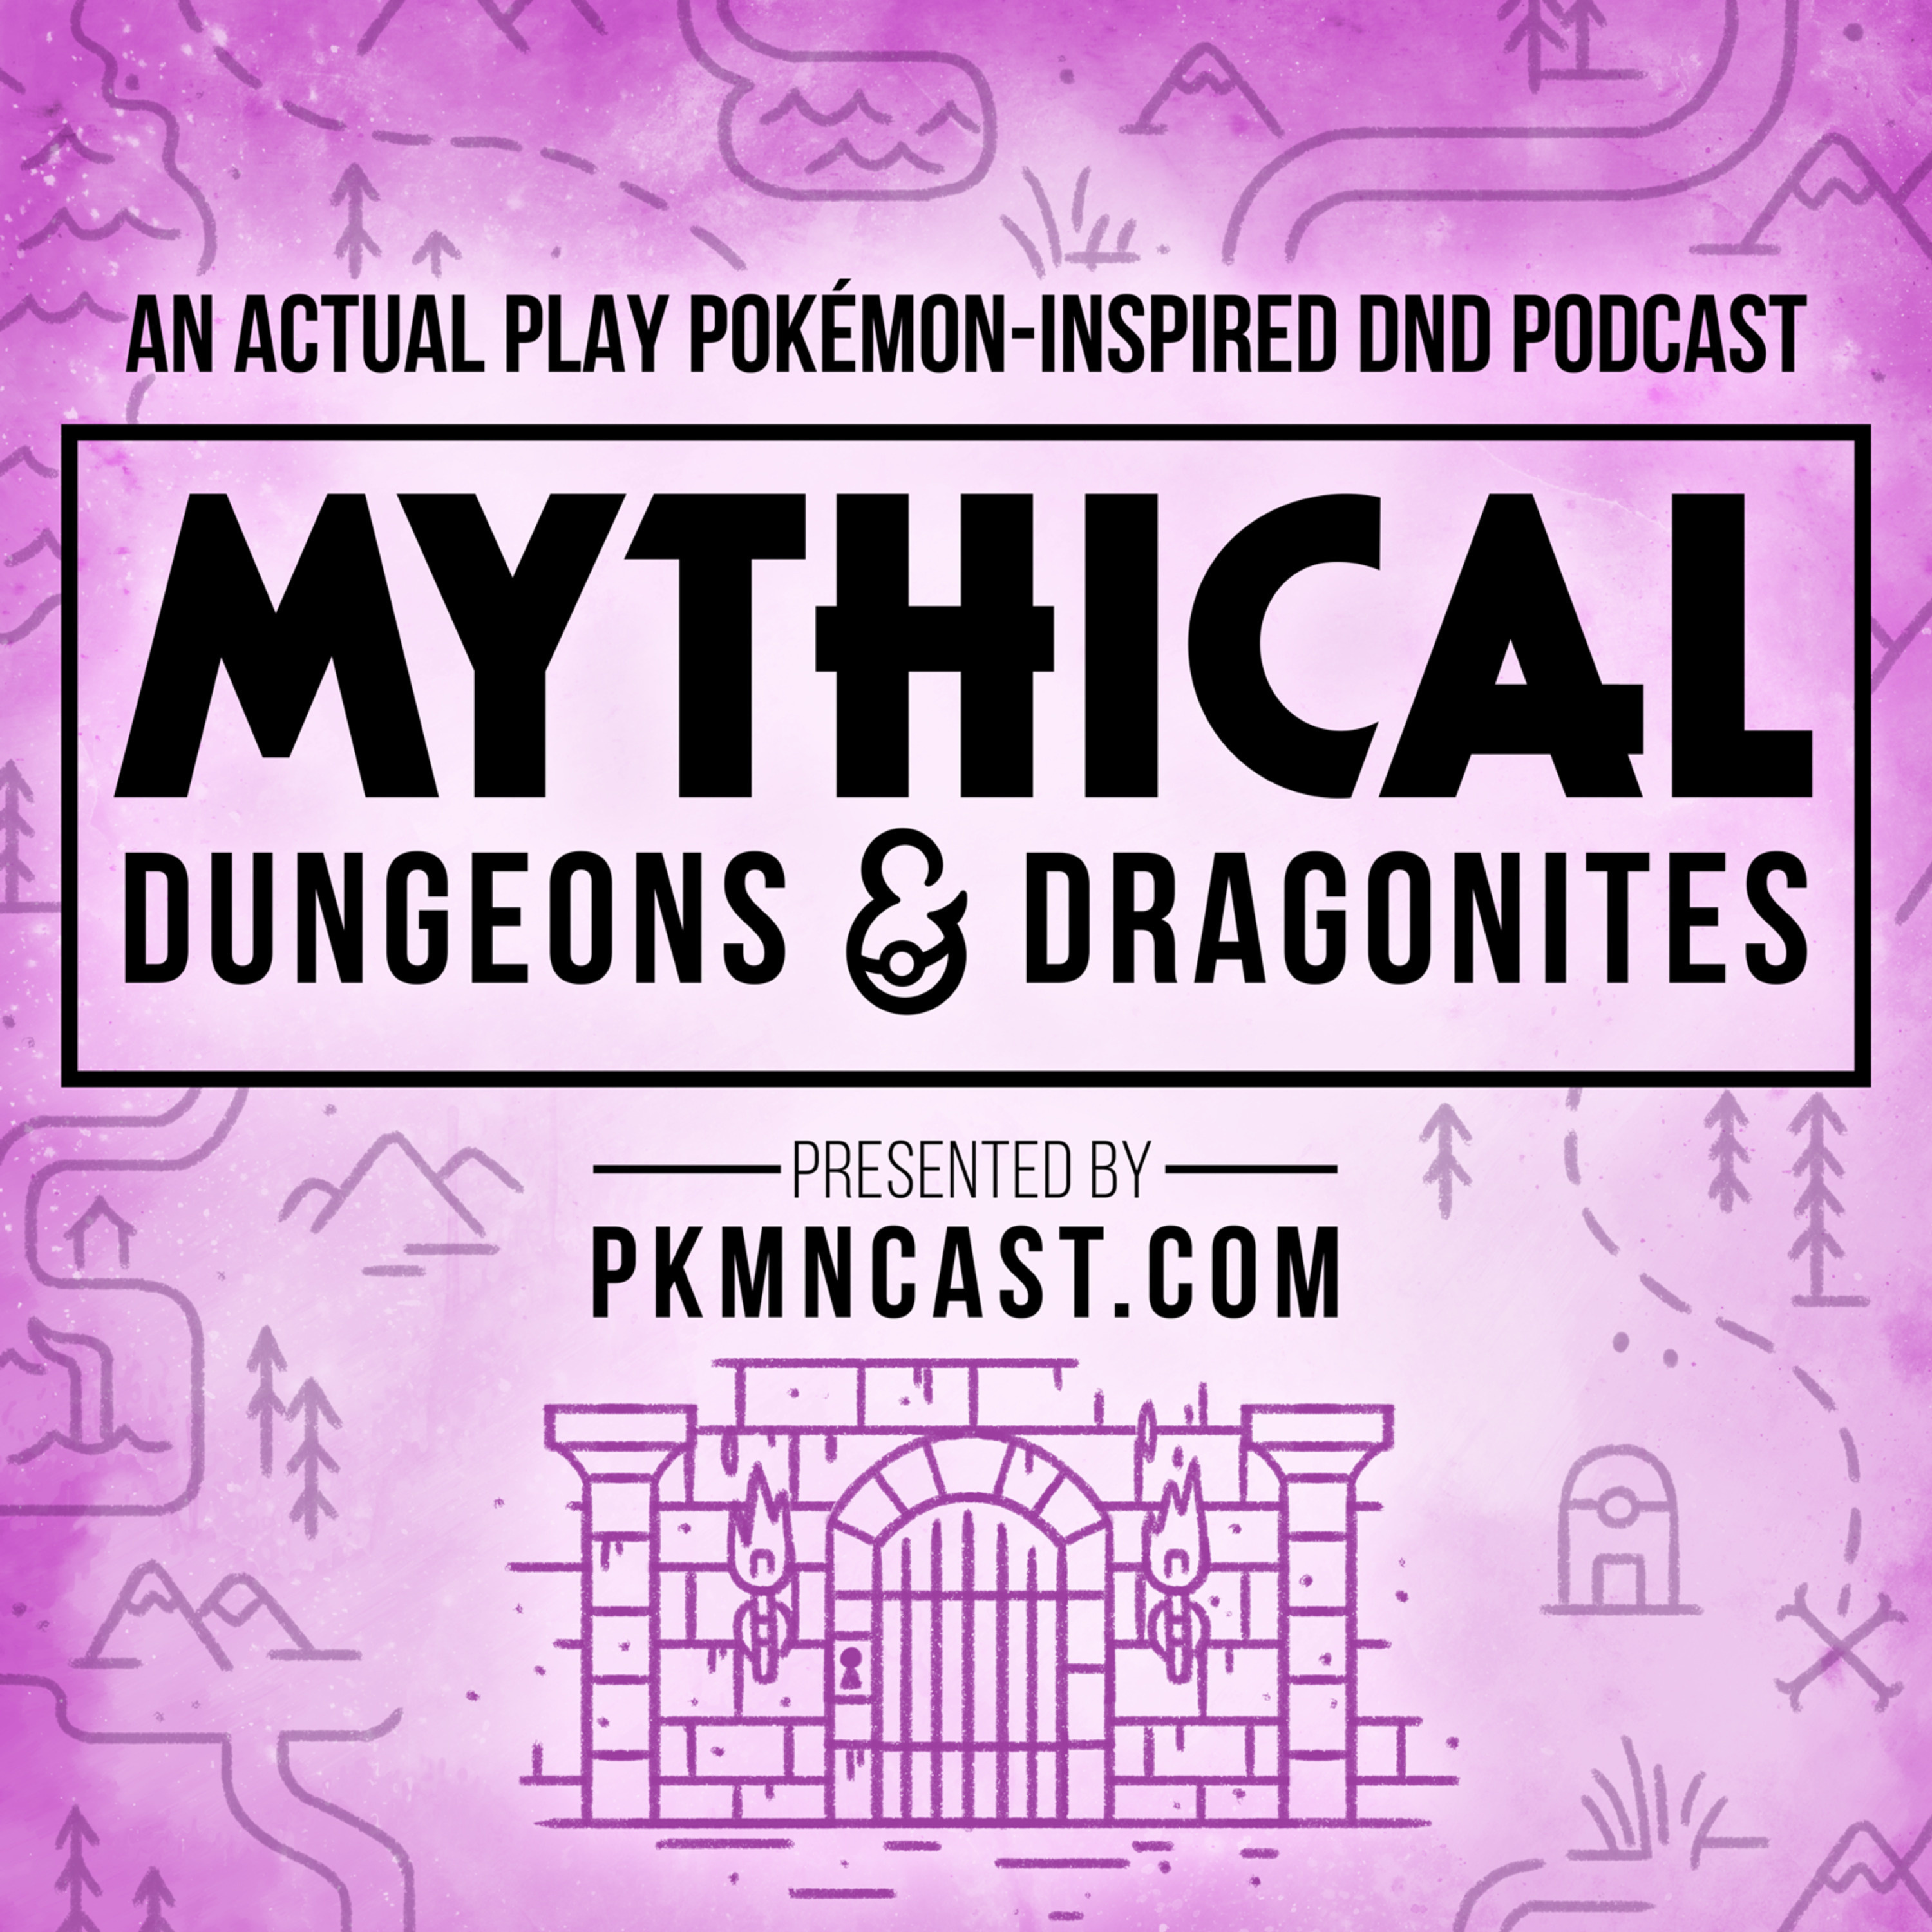 Best Episodes of Mythical: Pokémon-Inspired DnD Role Playing